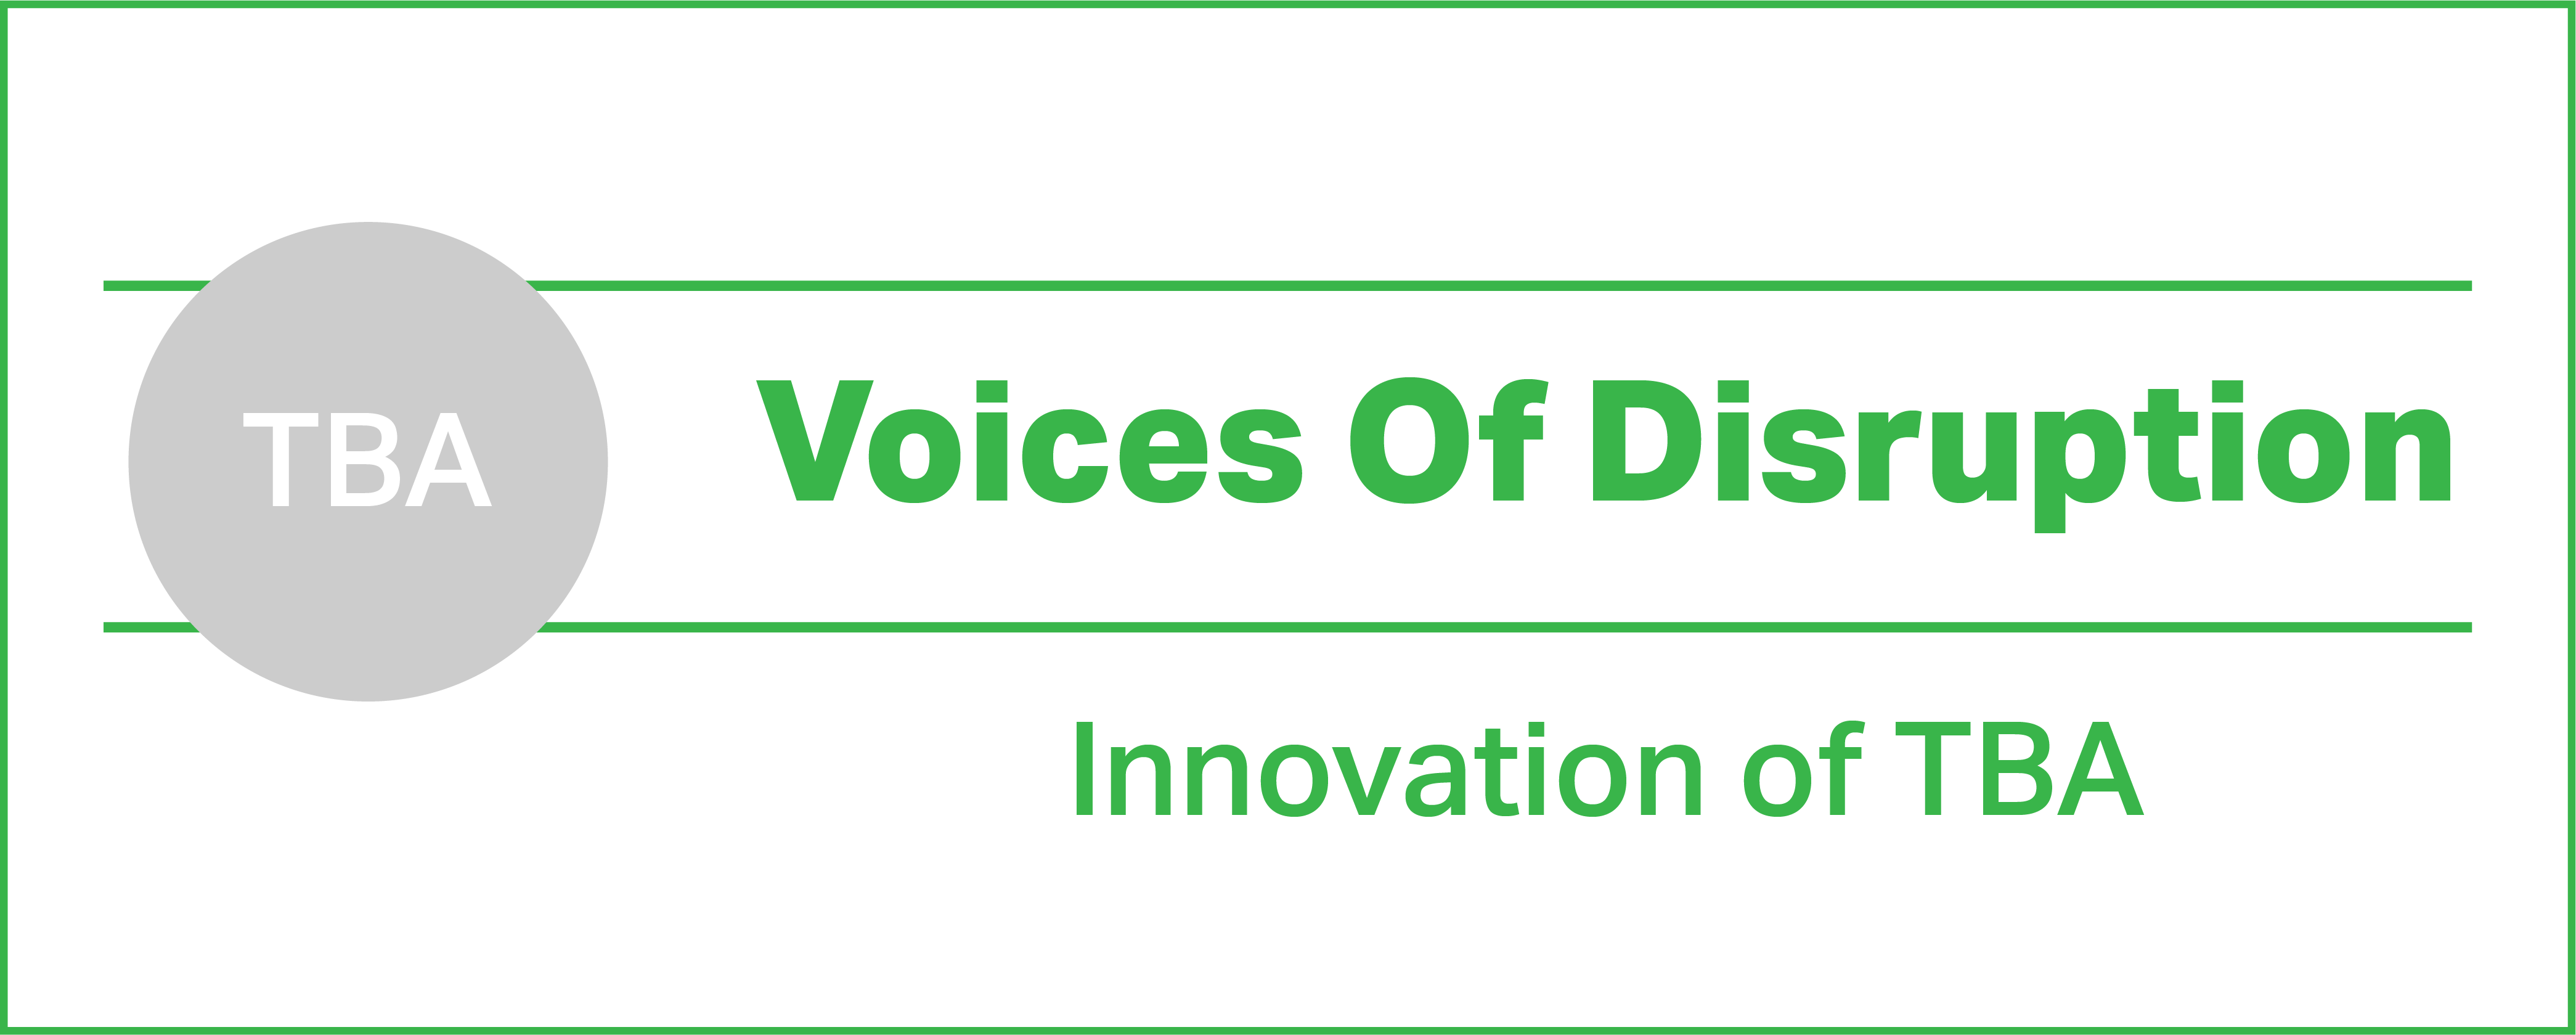 voicesofdisruption_1000x500-1.png